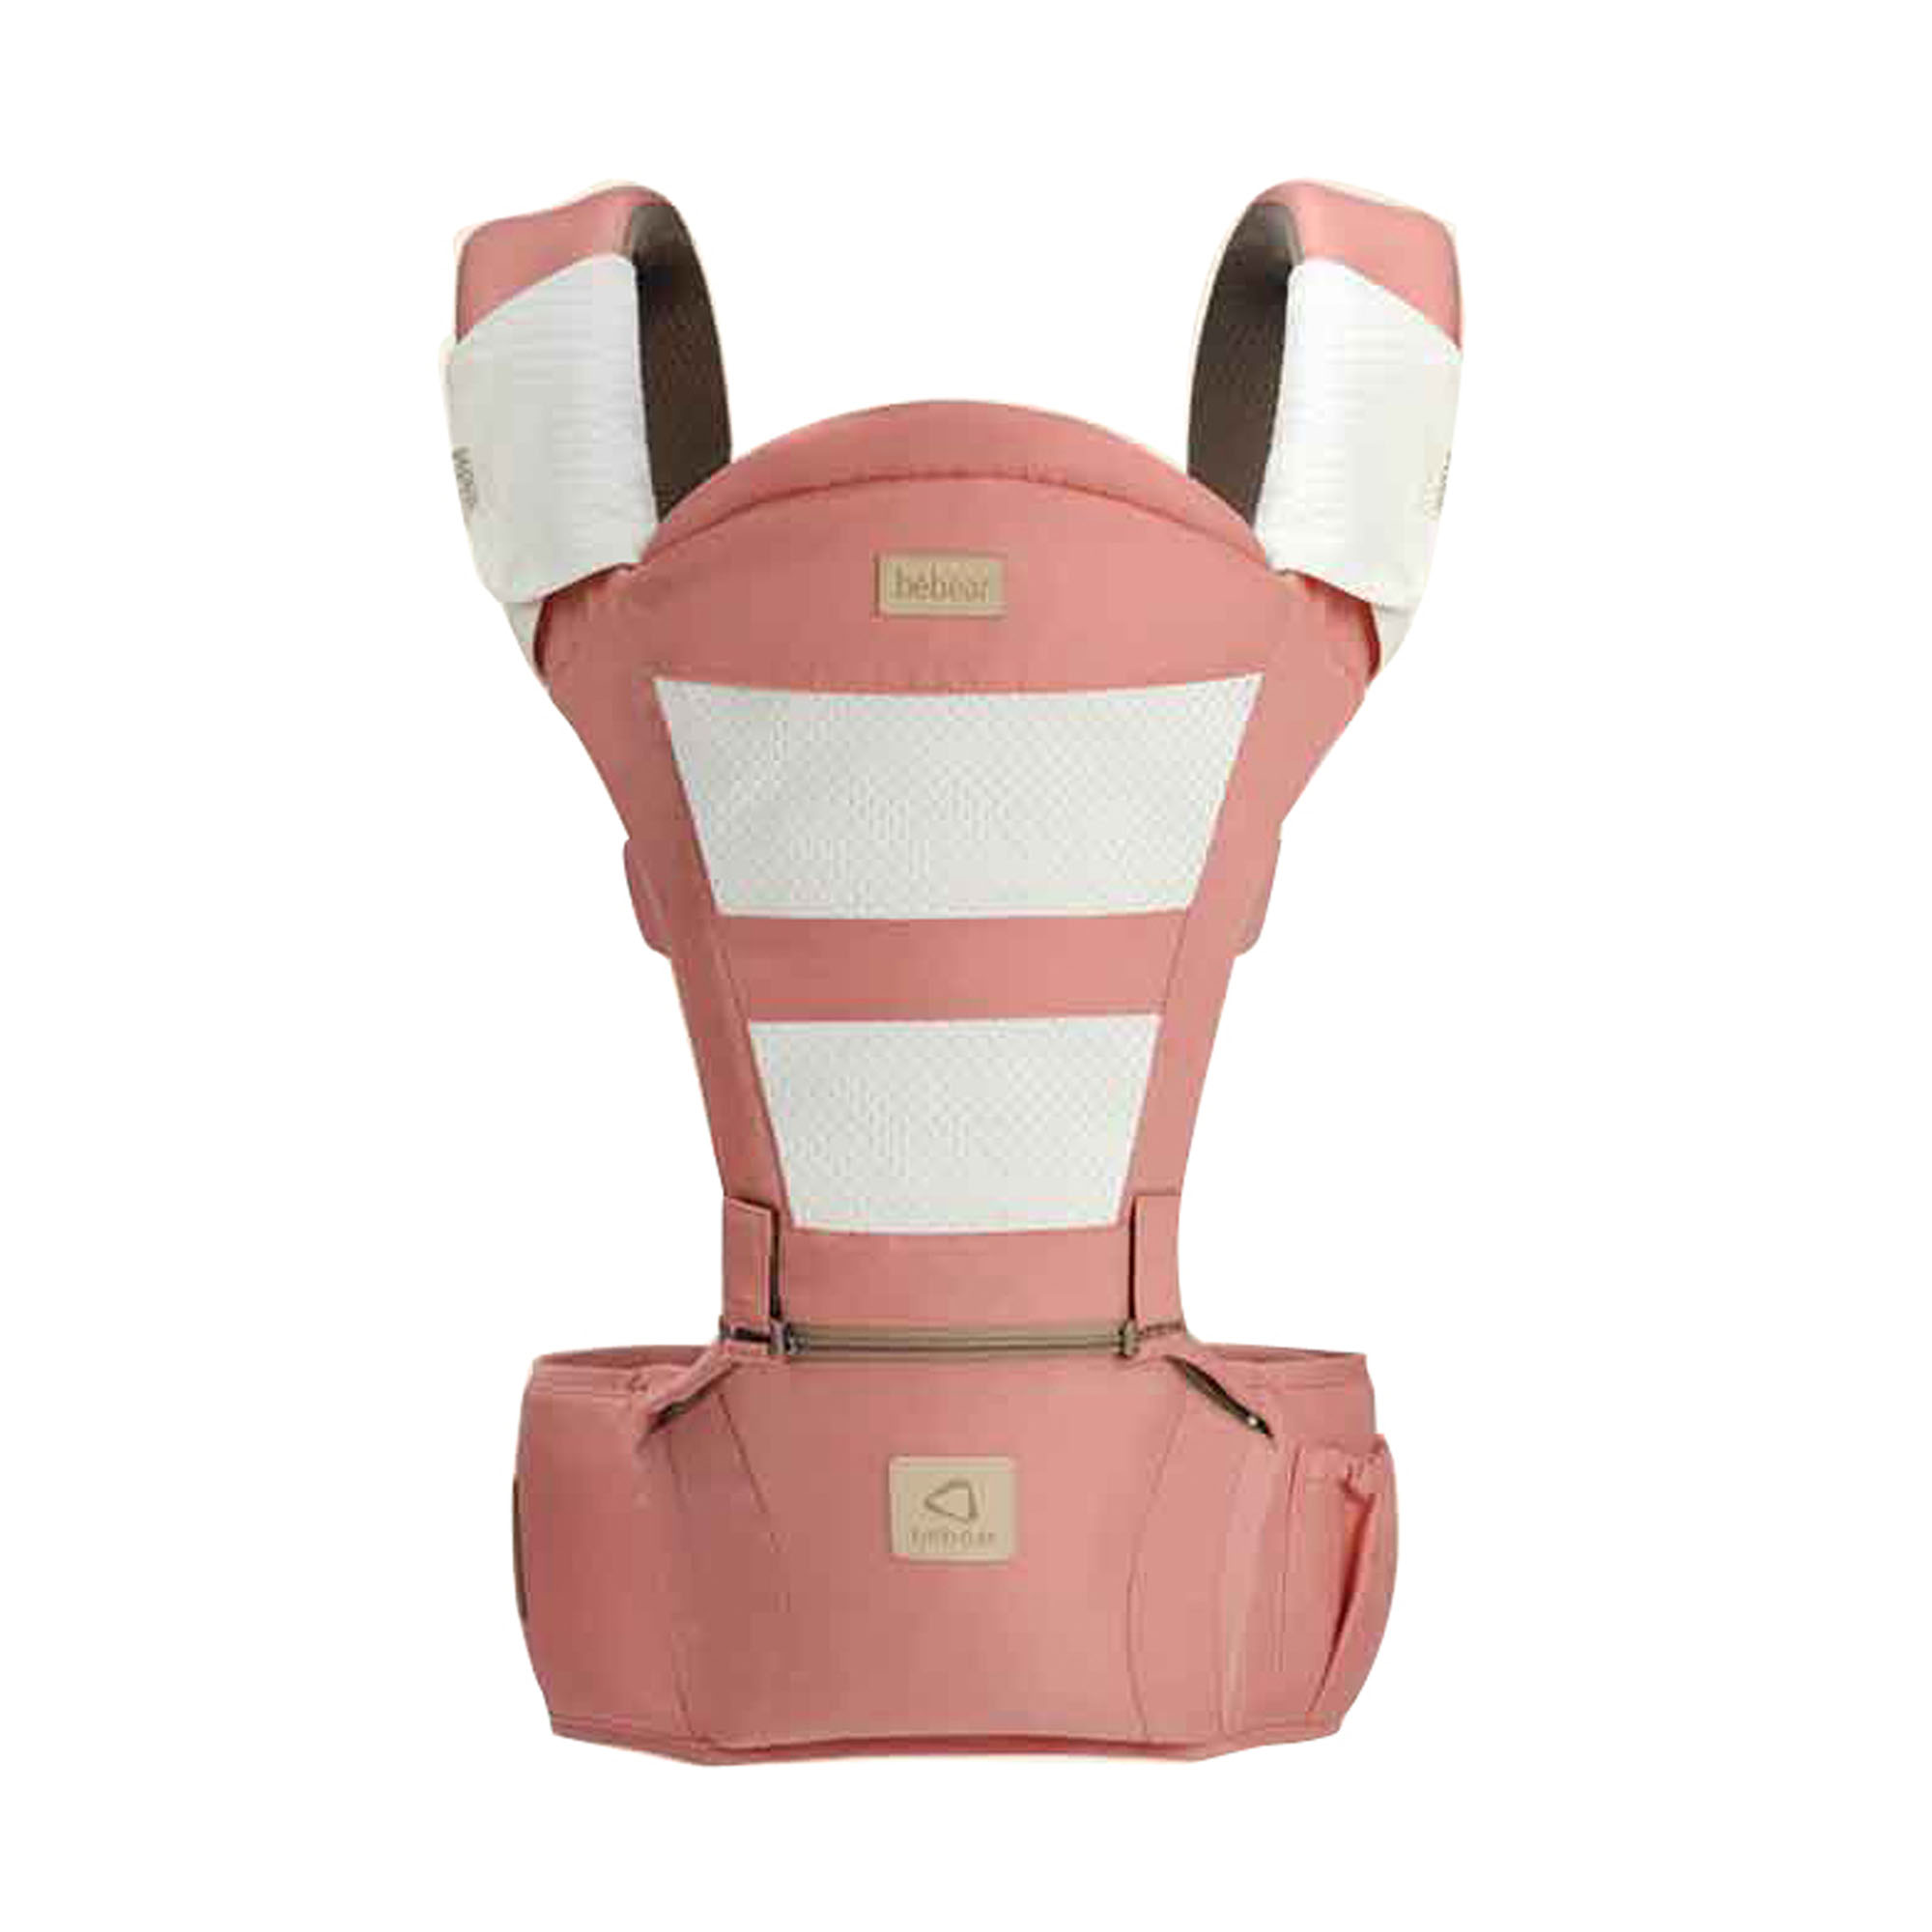 Ergonomic baby Carrier Sling - Pink